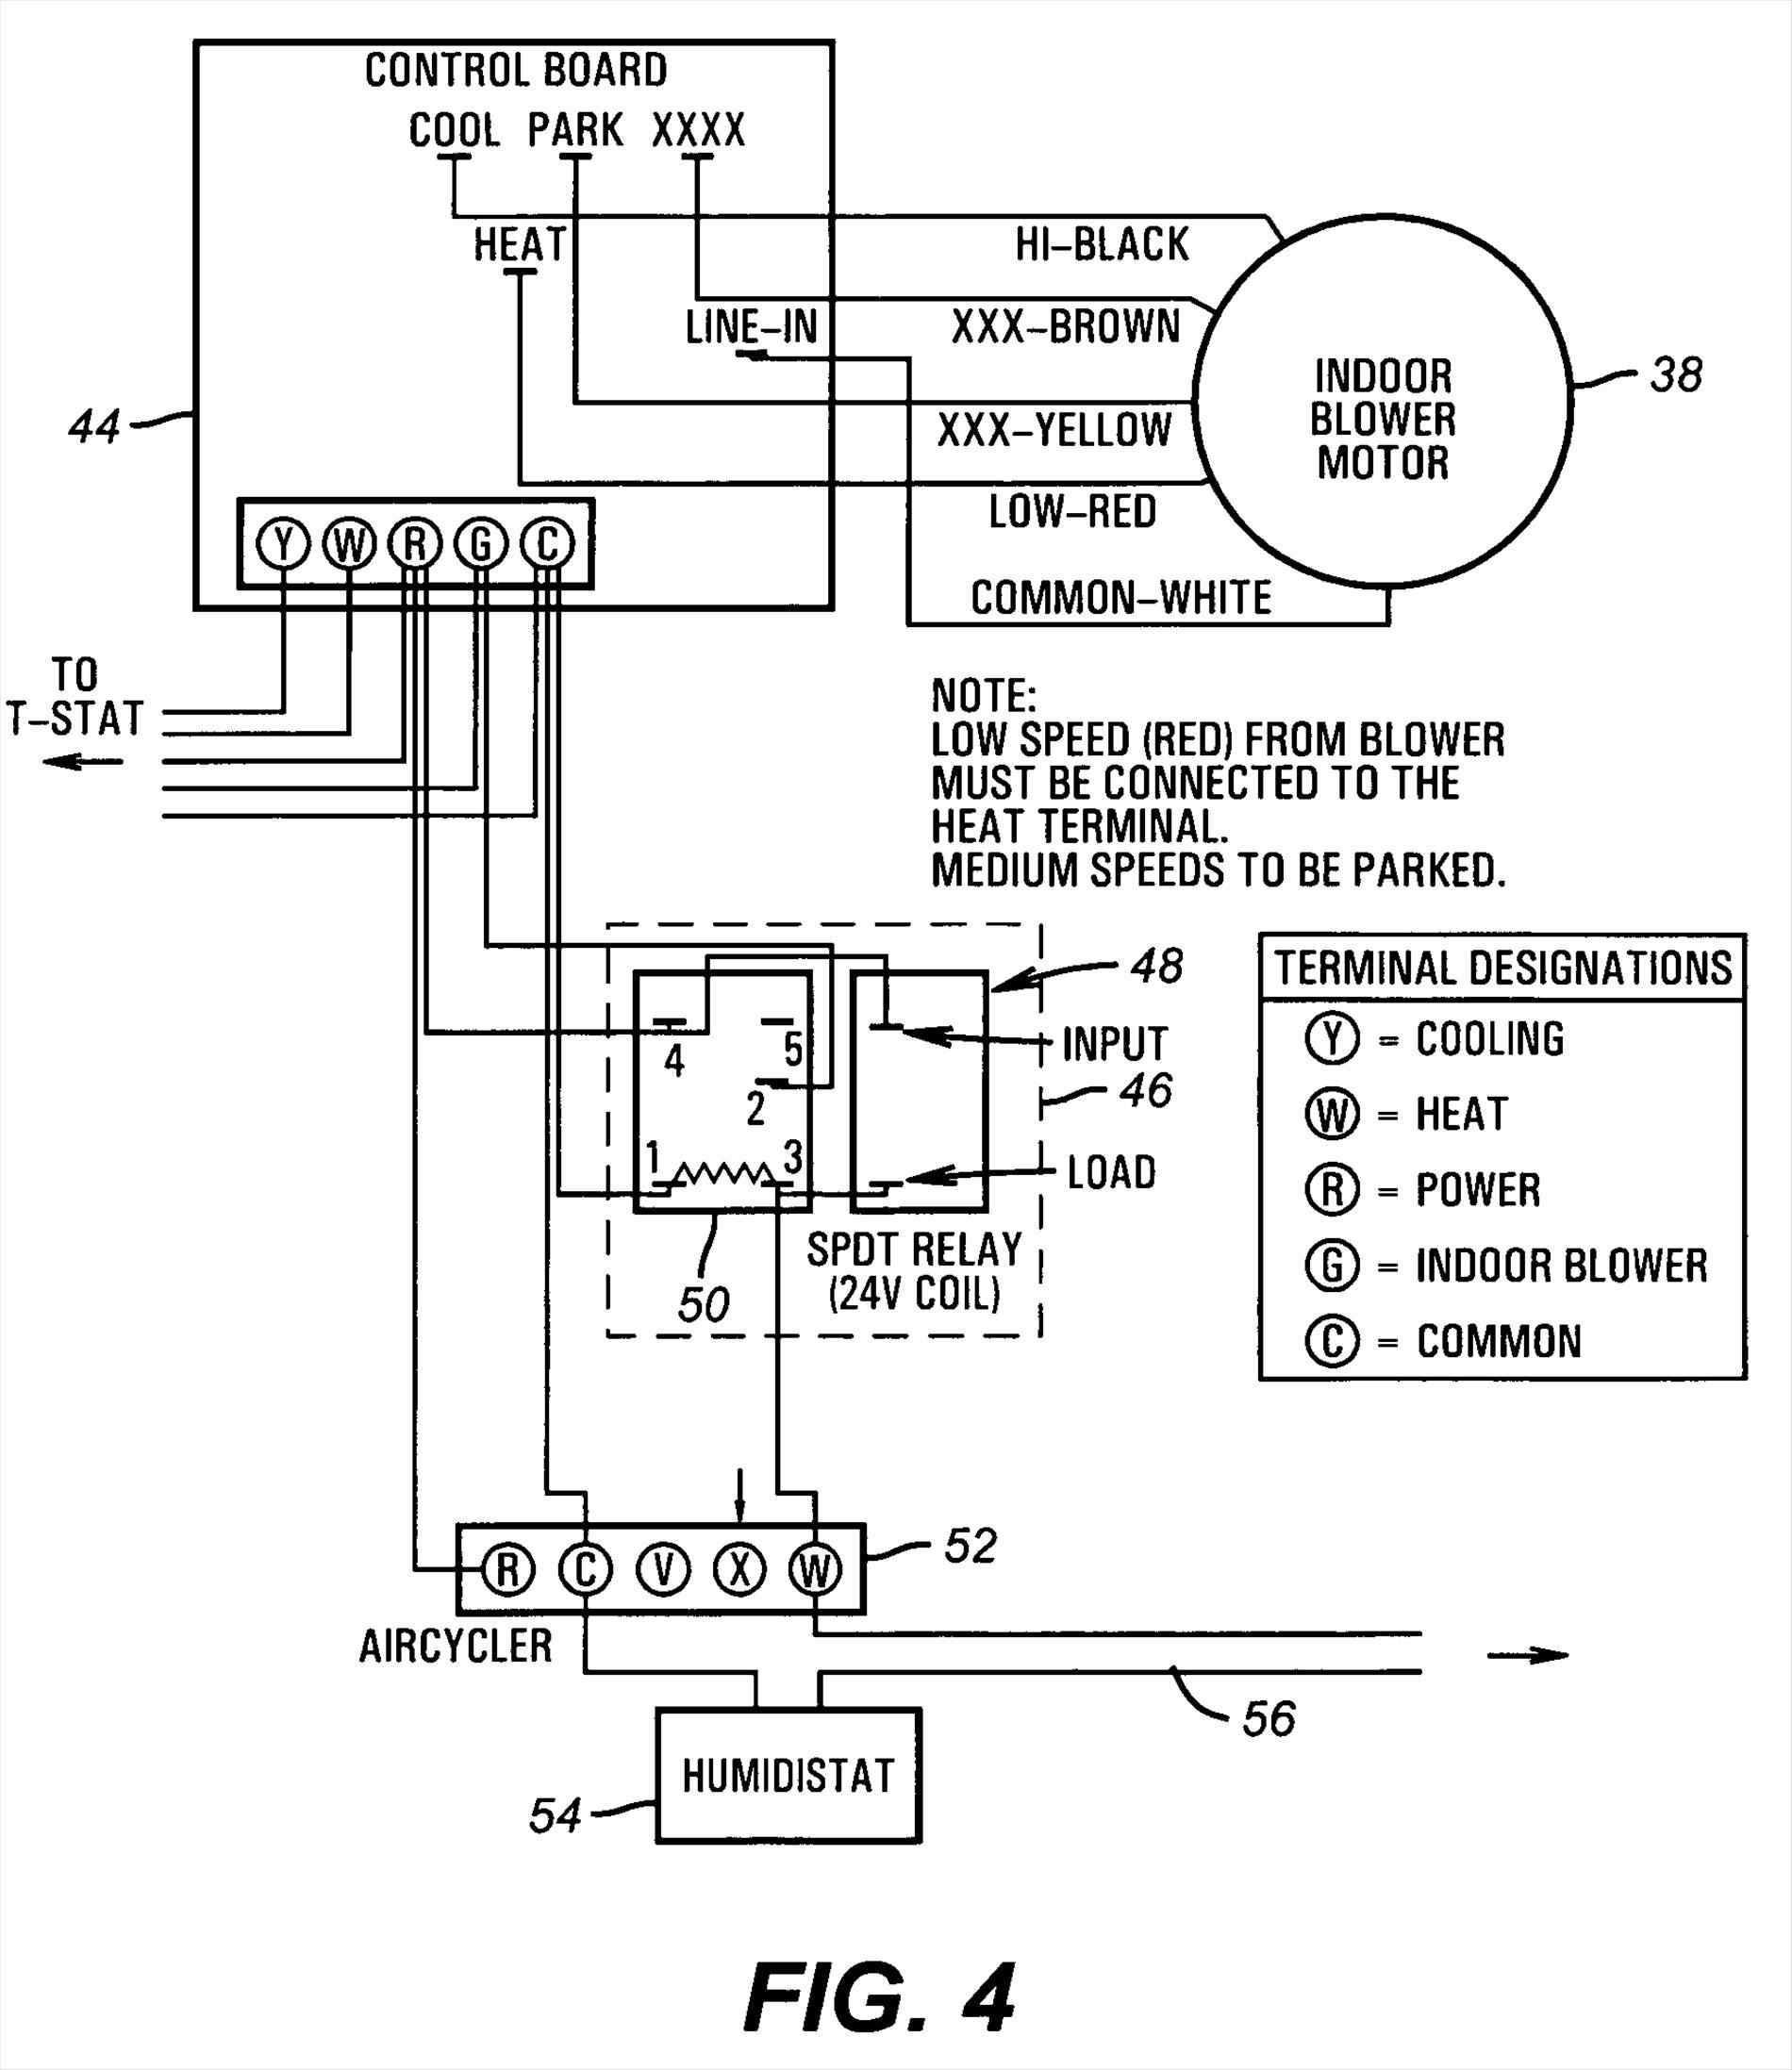 attic fan thermostat wiring diagram for dol motor starter humidistat control  ideas